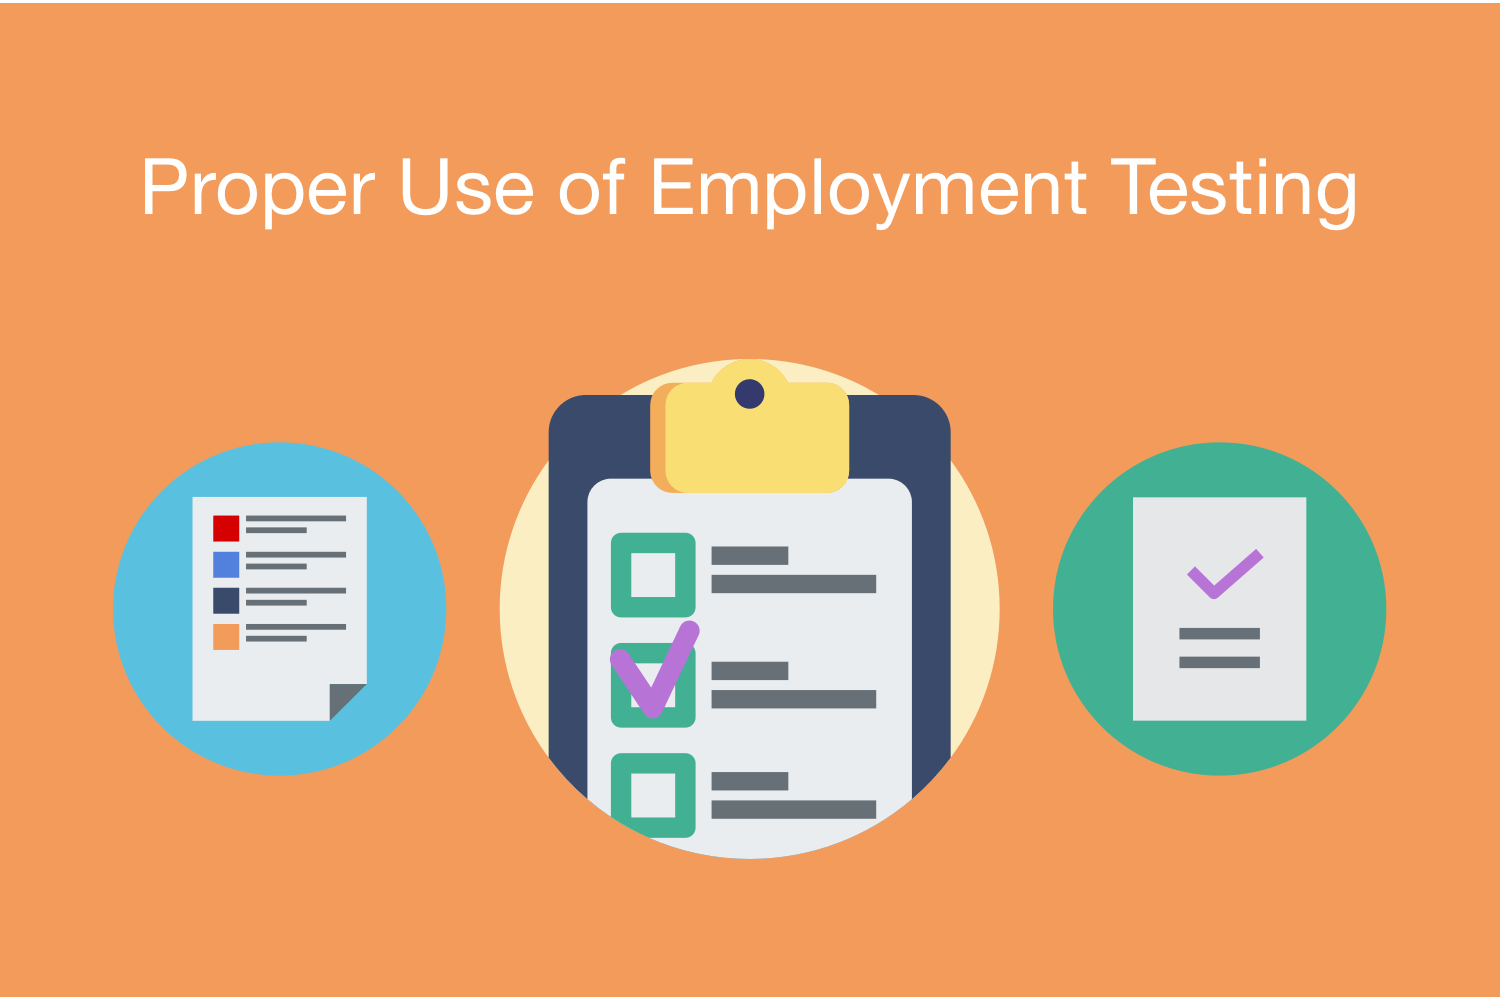 Proper Use of Employment Testing